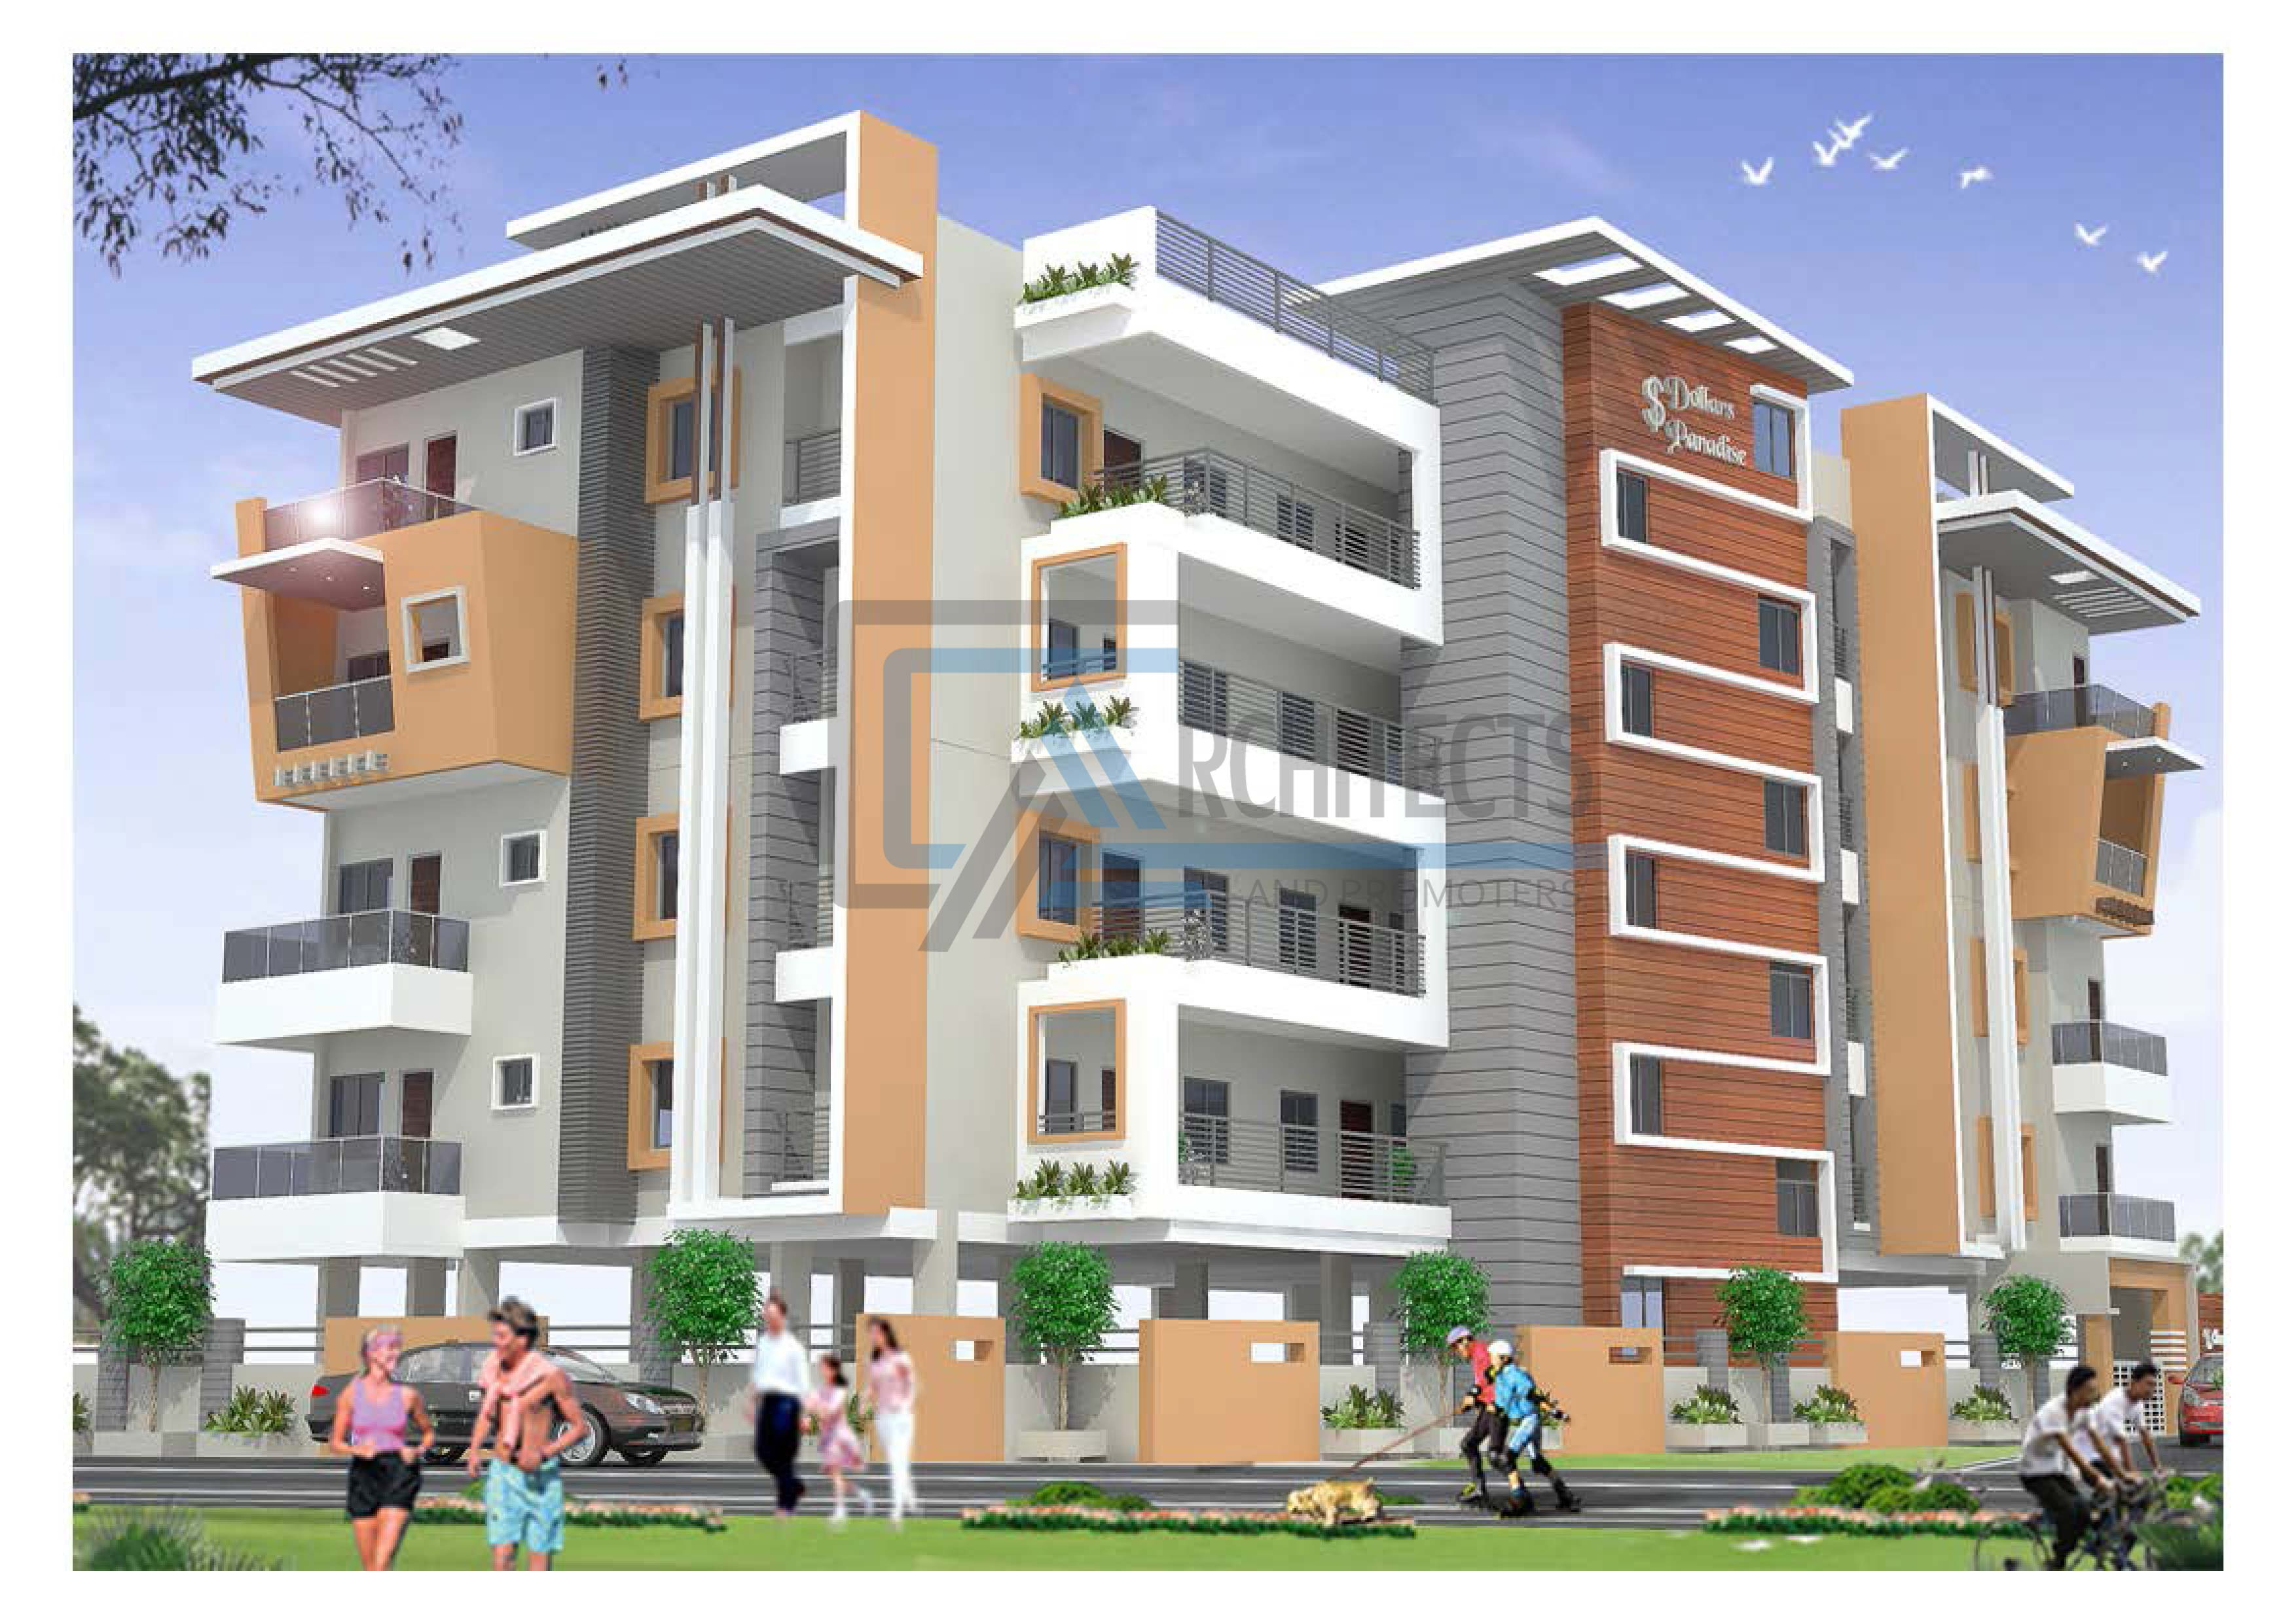 Apartment Exterior Elevation Rendering Model Using S Max And